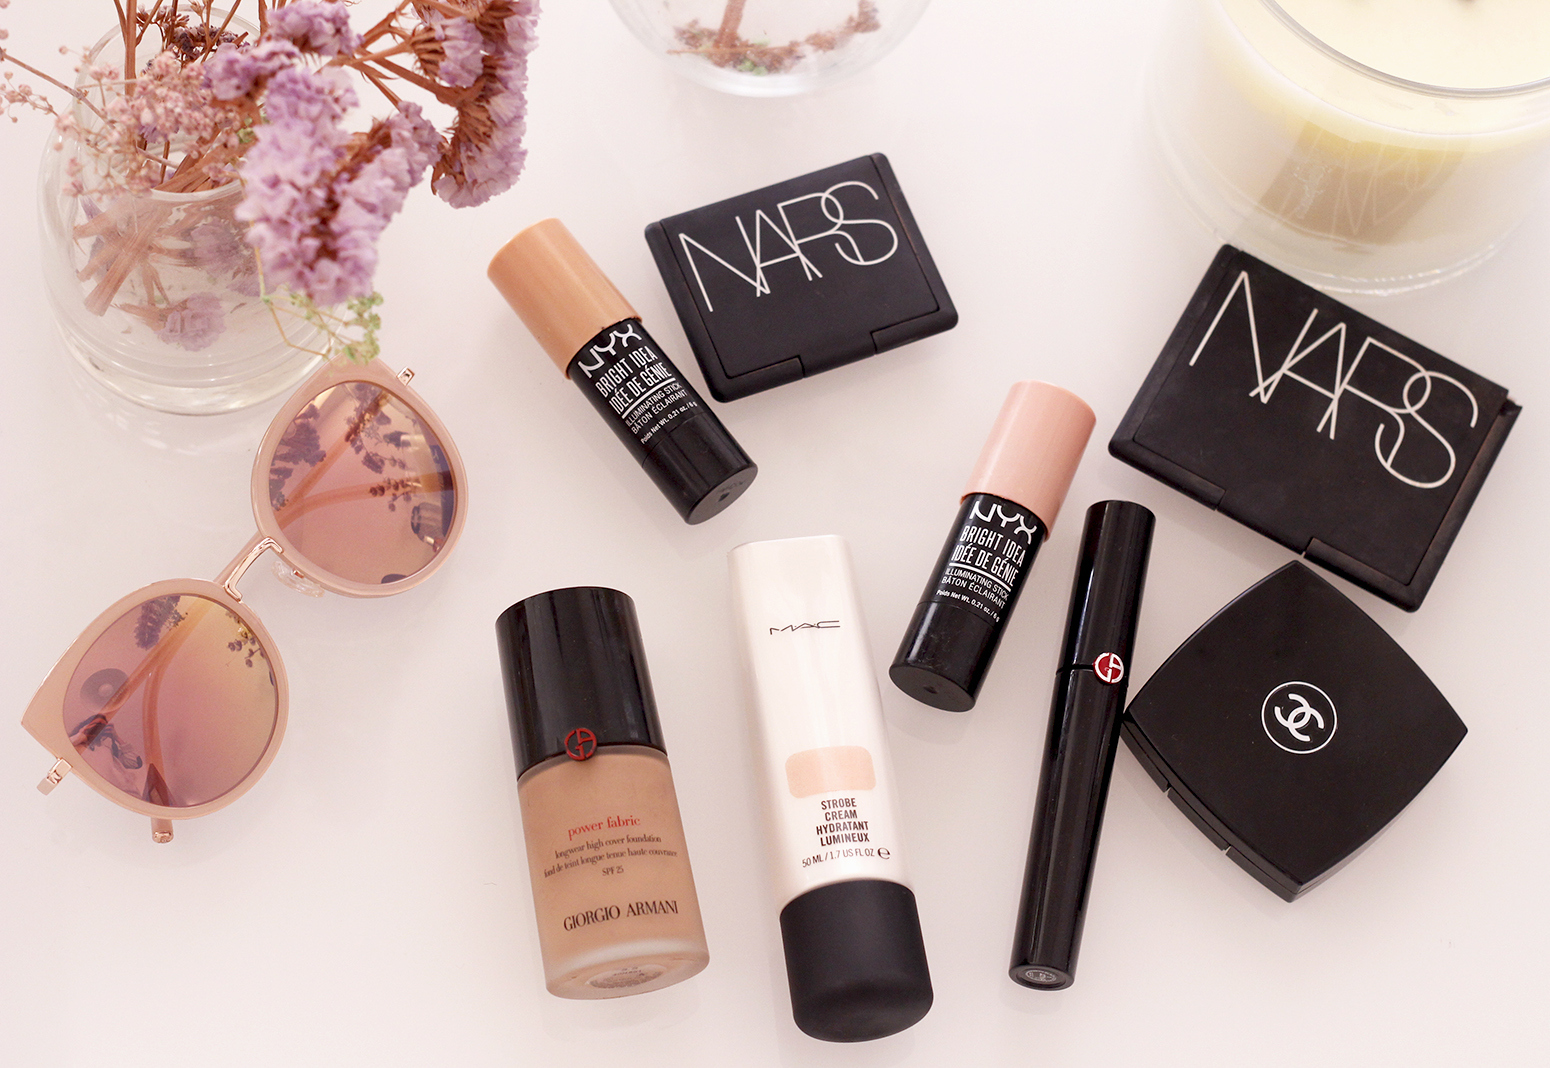 mejores productos de belleza best beauty products nars biotherm chanel NYX Mac2